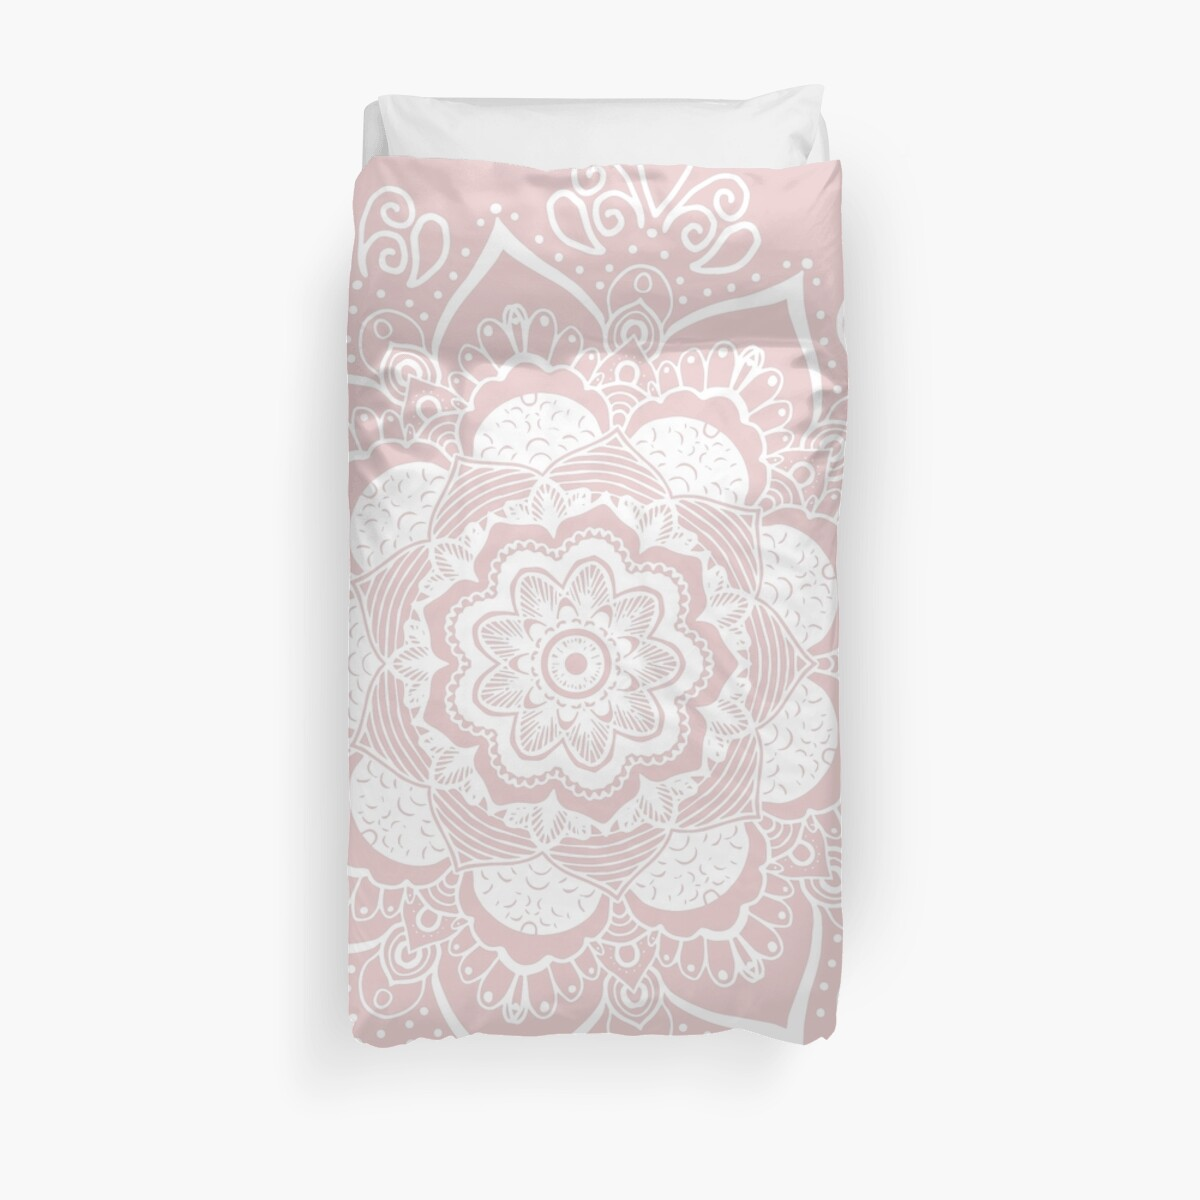 Mandala Rose Art Bed Cover by Bluebdesigns